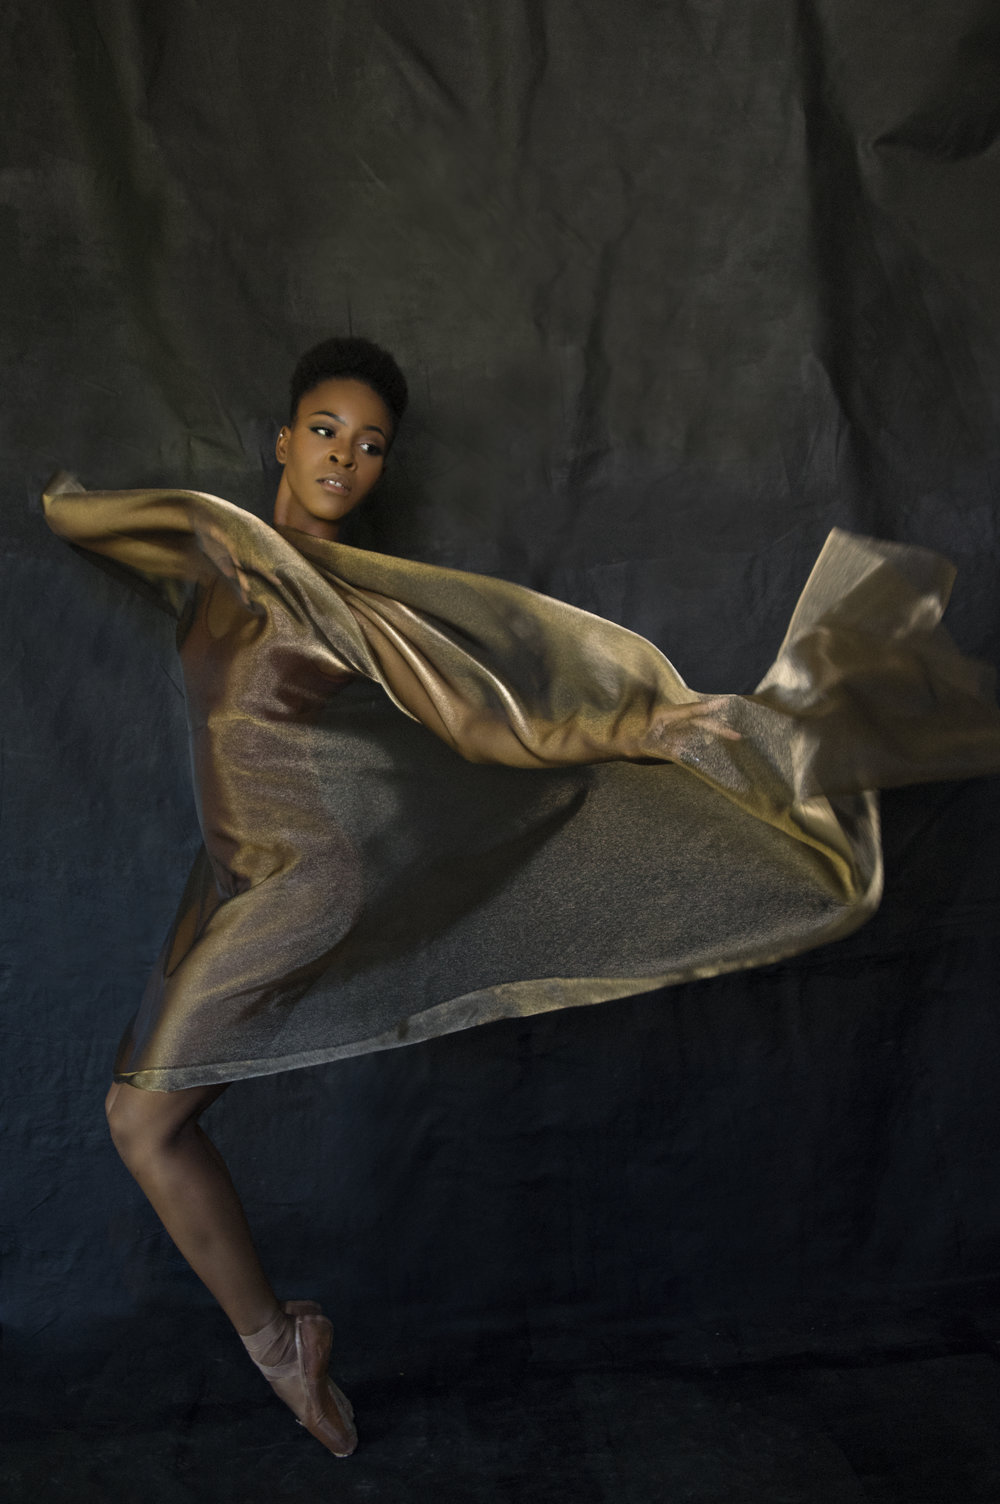 Portrait of a dancer on pointe